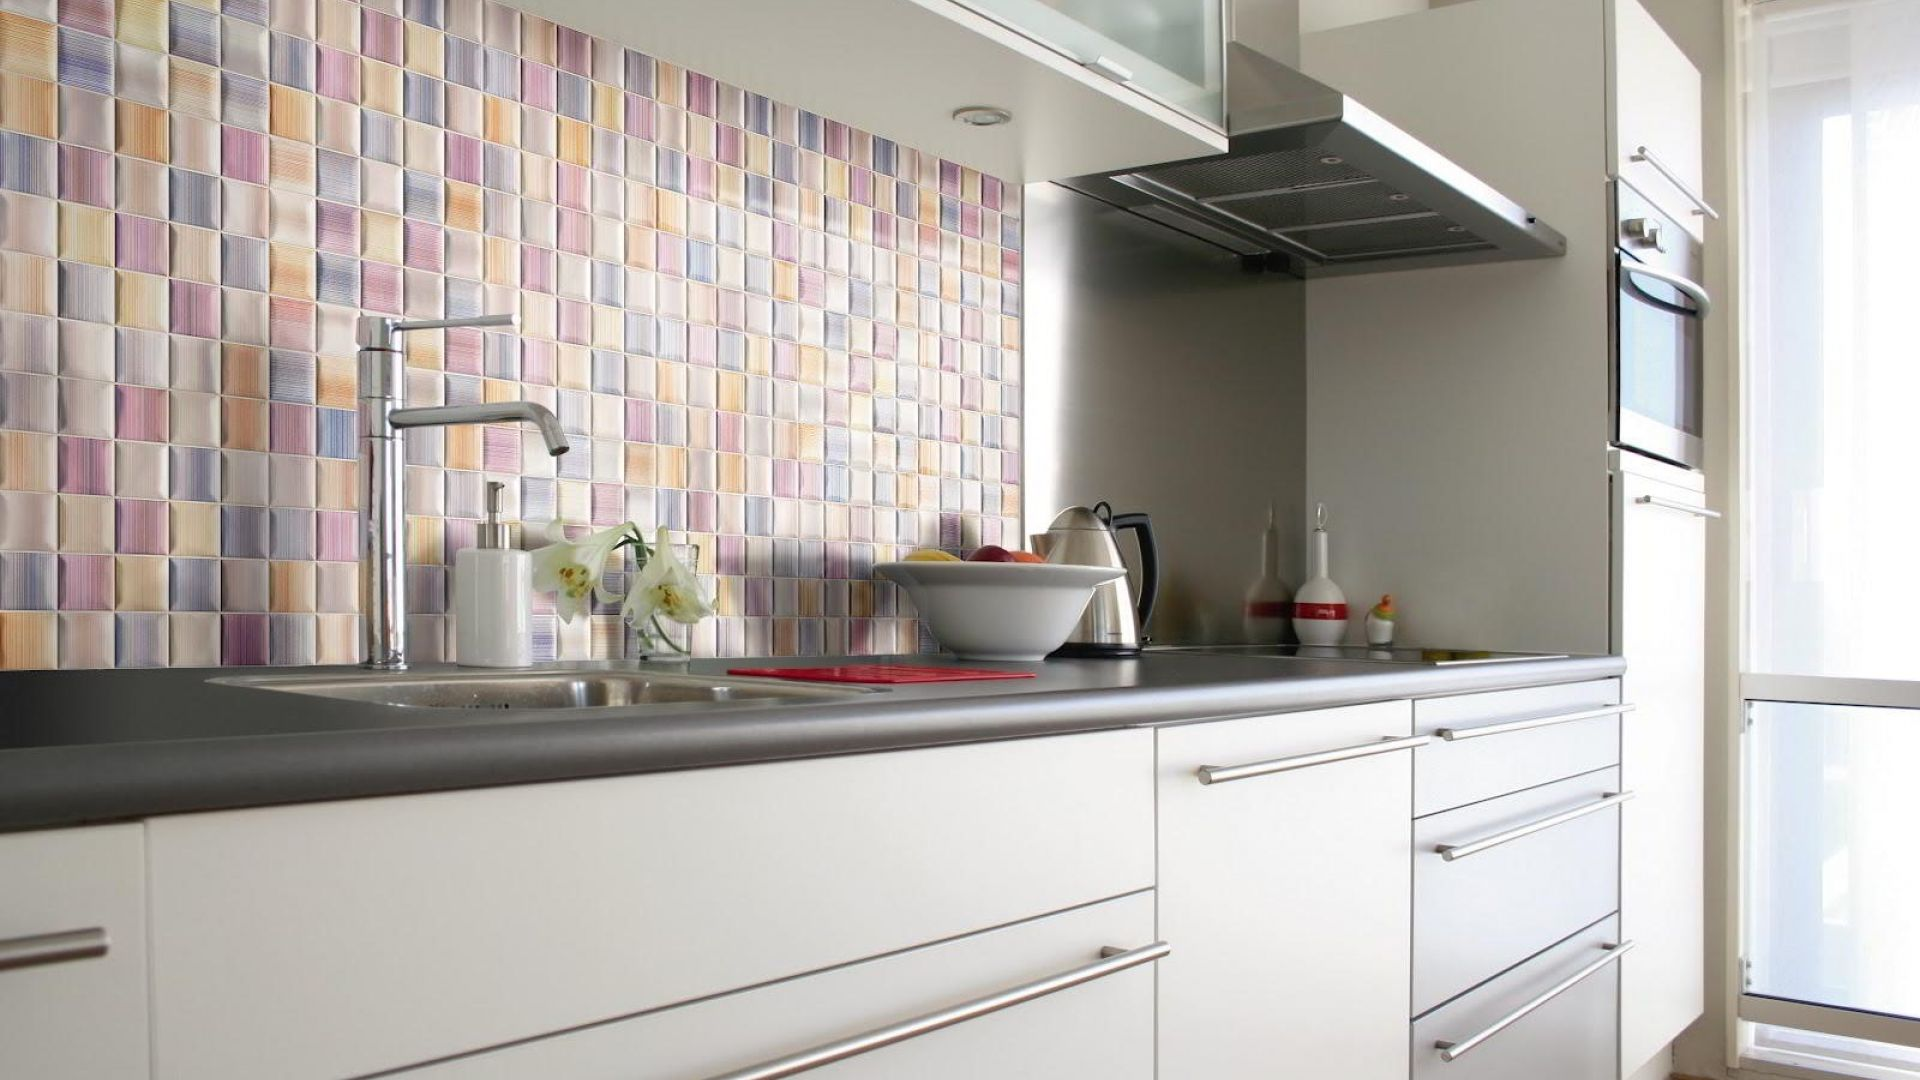 The Use Of Mosaic Tiles Both In House Interior And Exterior Is Increasing Over Time With An Ever Evolving Design That Follows Trend Are